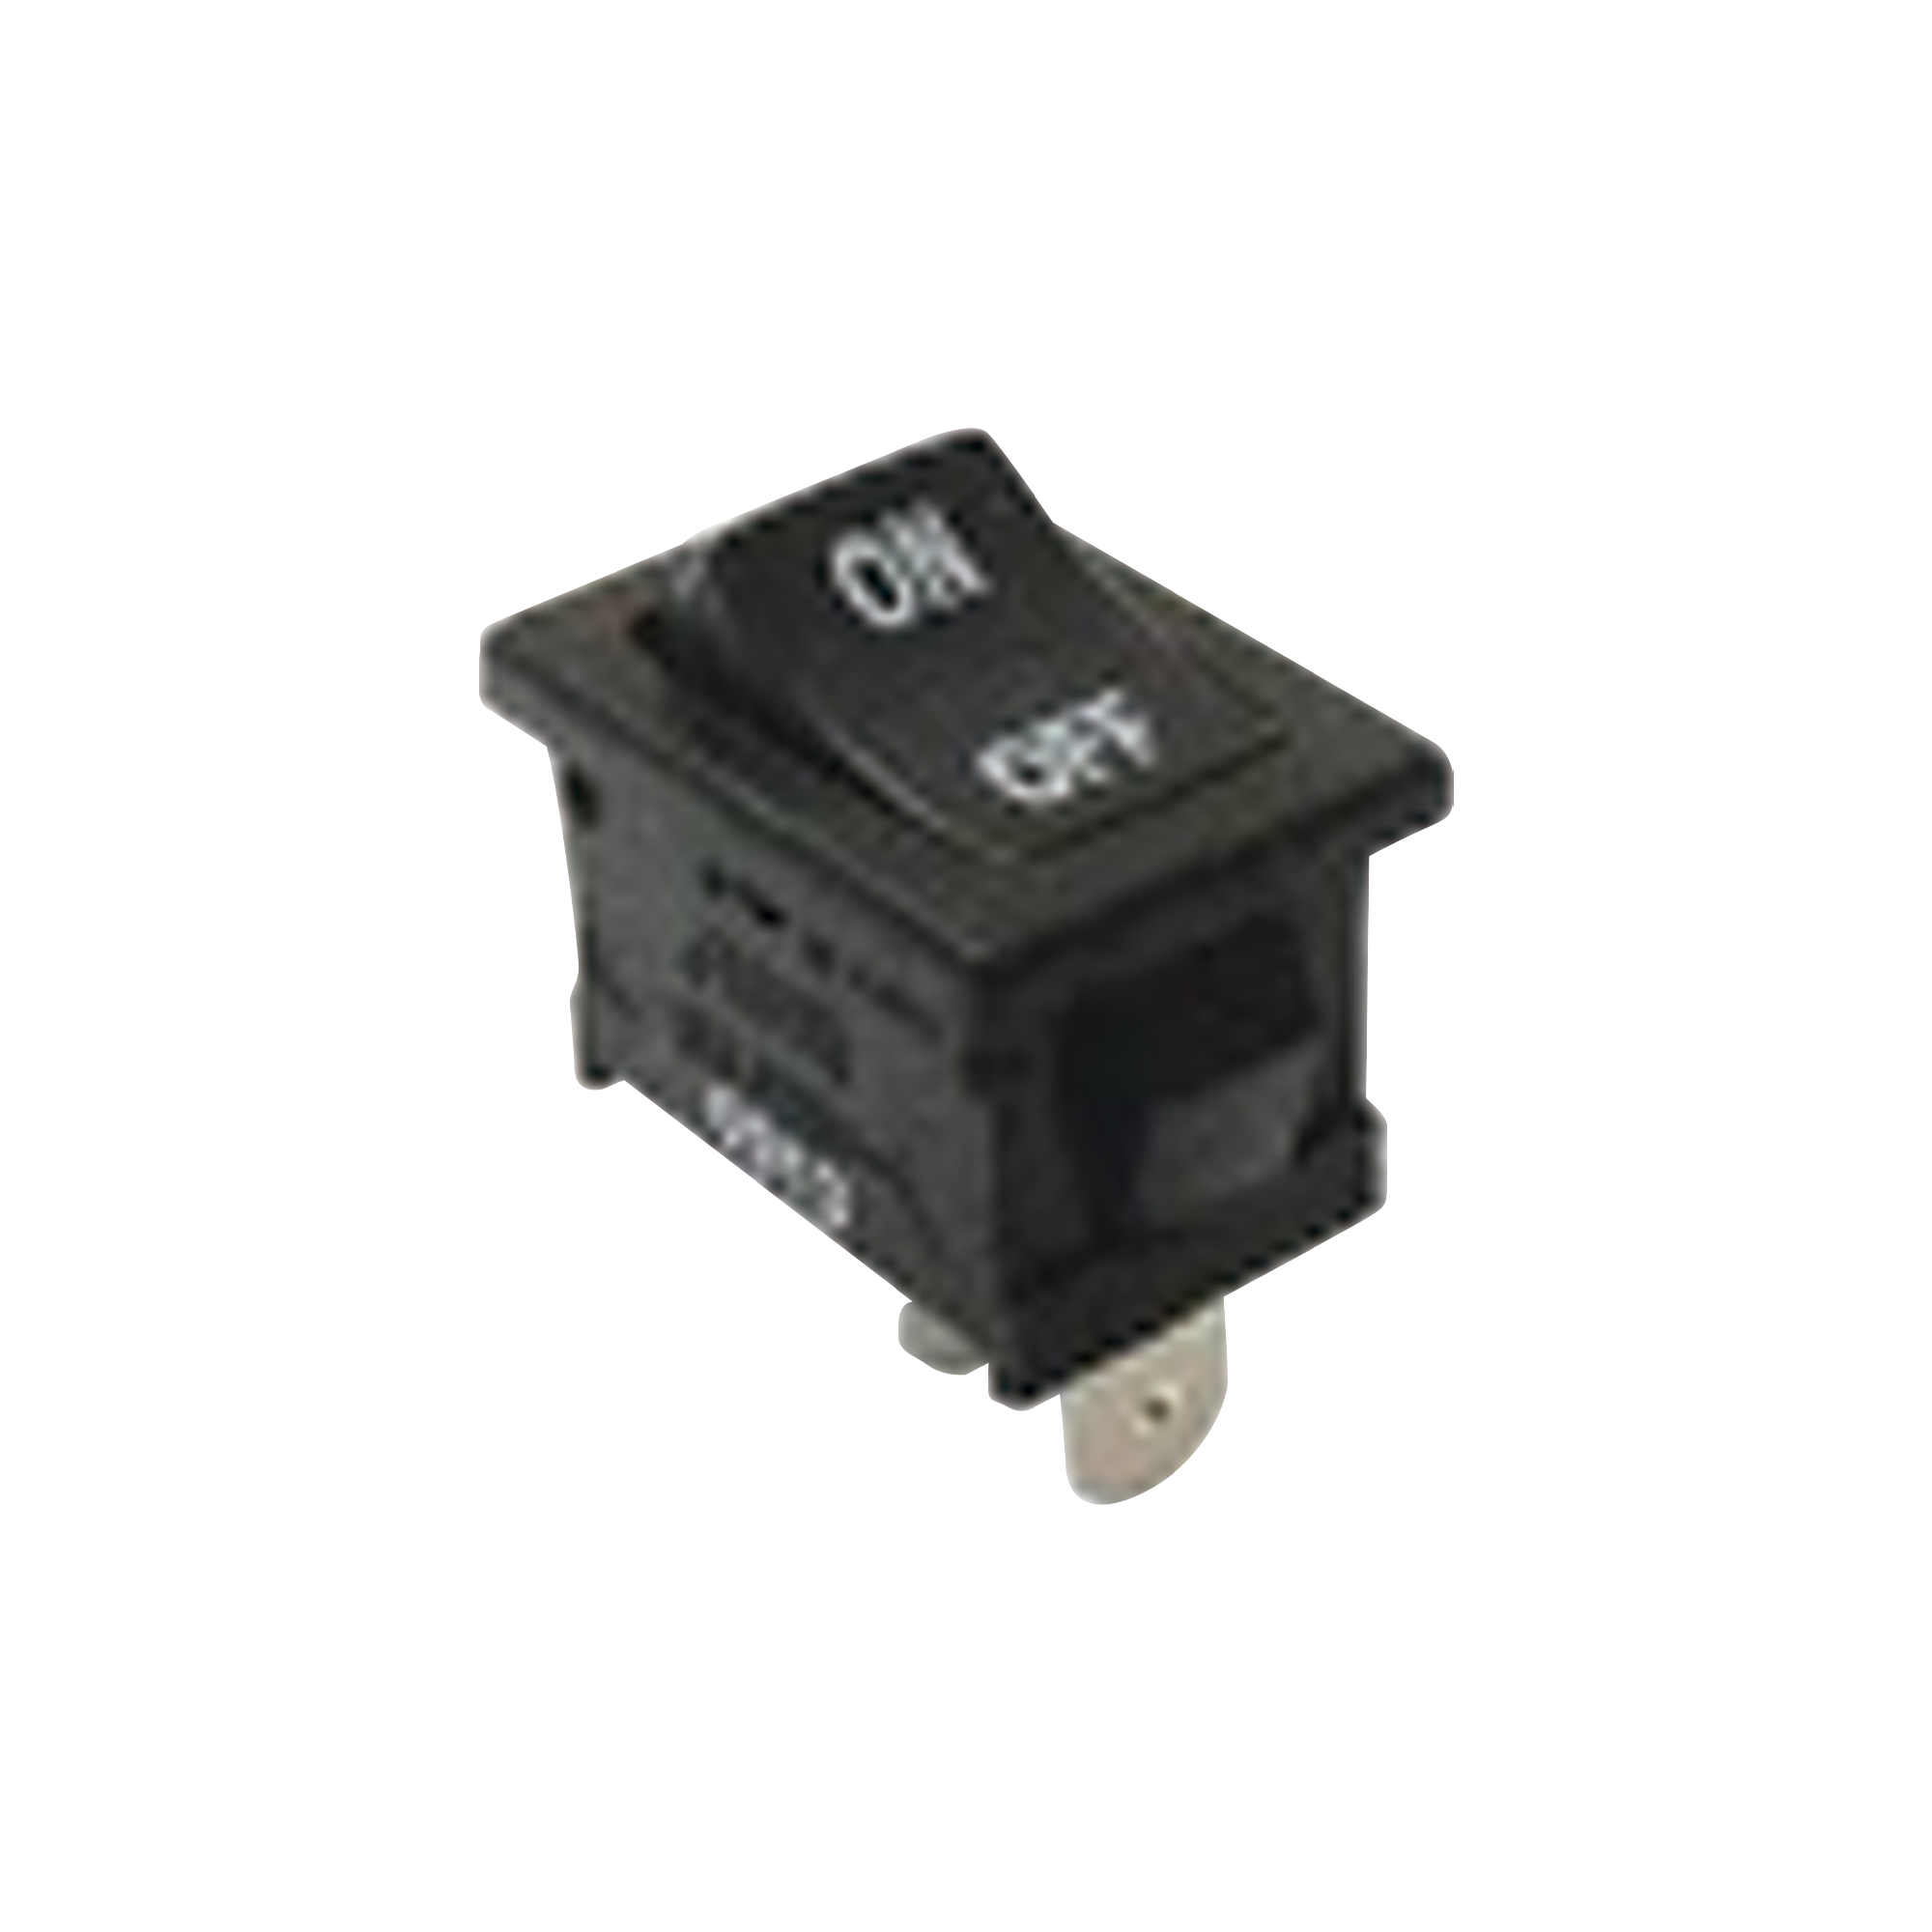 Interruptor Rocker SPST Off-On, Poliamida Negro, 11 Amp., Hasta 125 Vca, Contacto en Plata, 4.8 mm